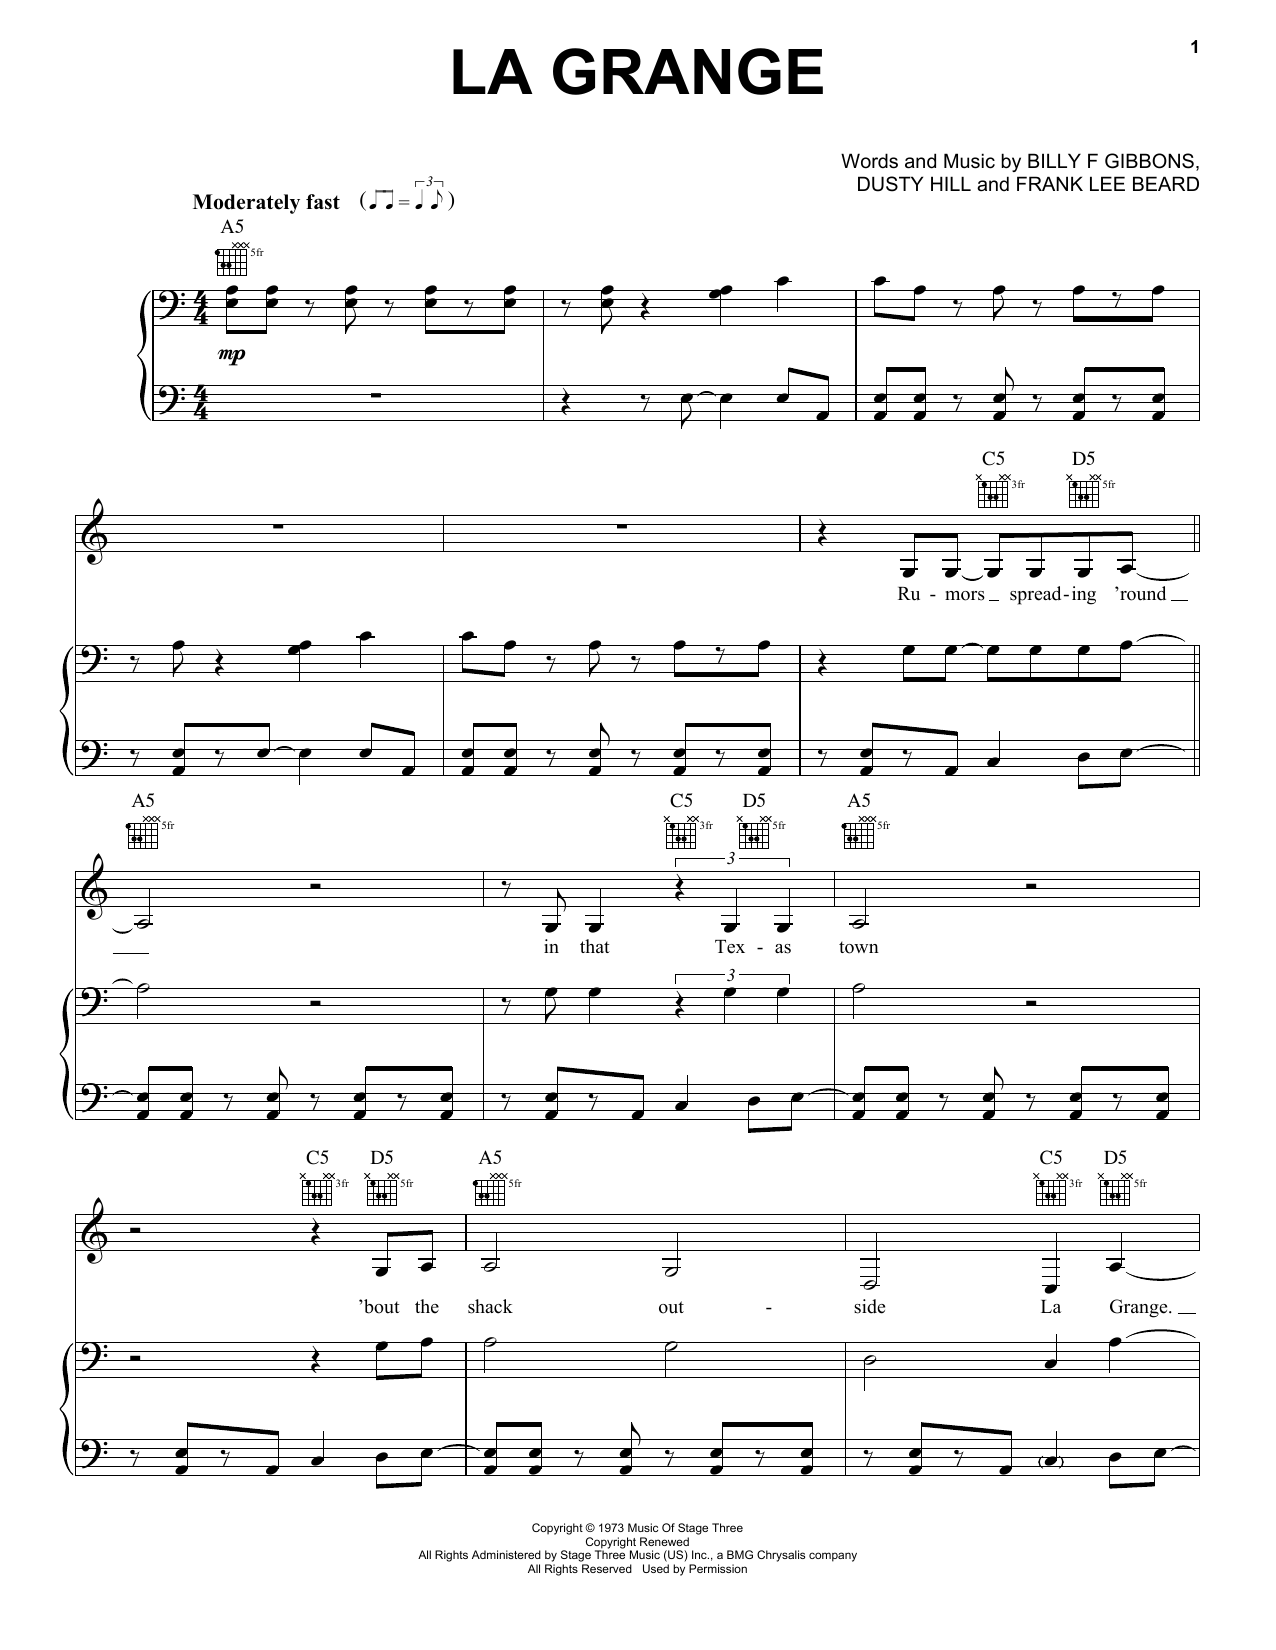 La Grange sheet music by ZZ Top (Piano, Vocal u0026 Guitar (Right-Hand Melody) u2013 161848)